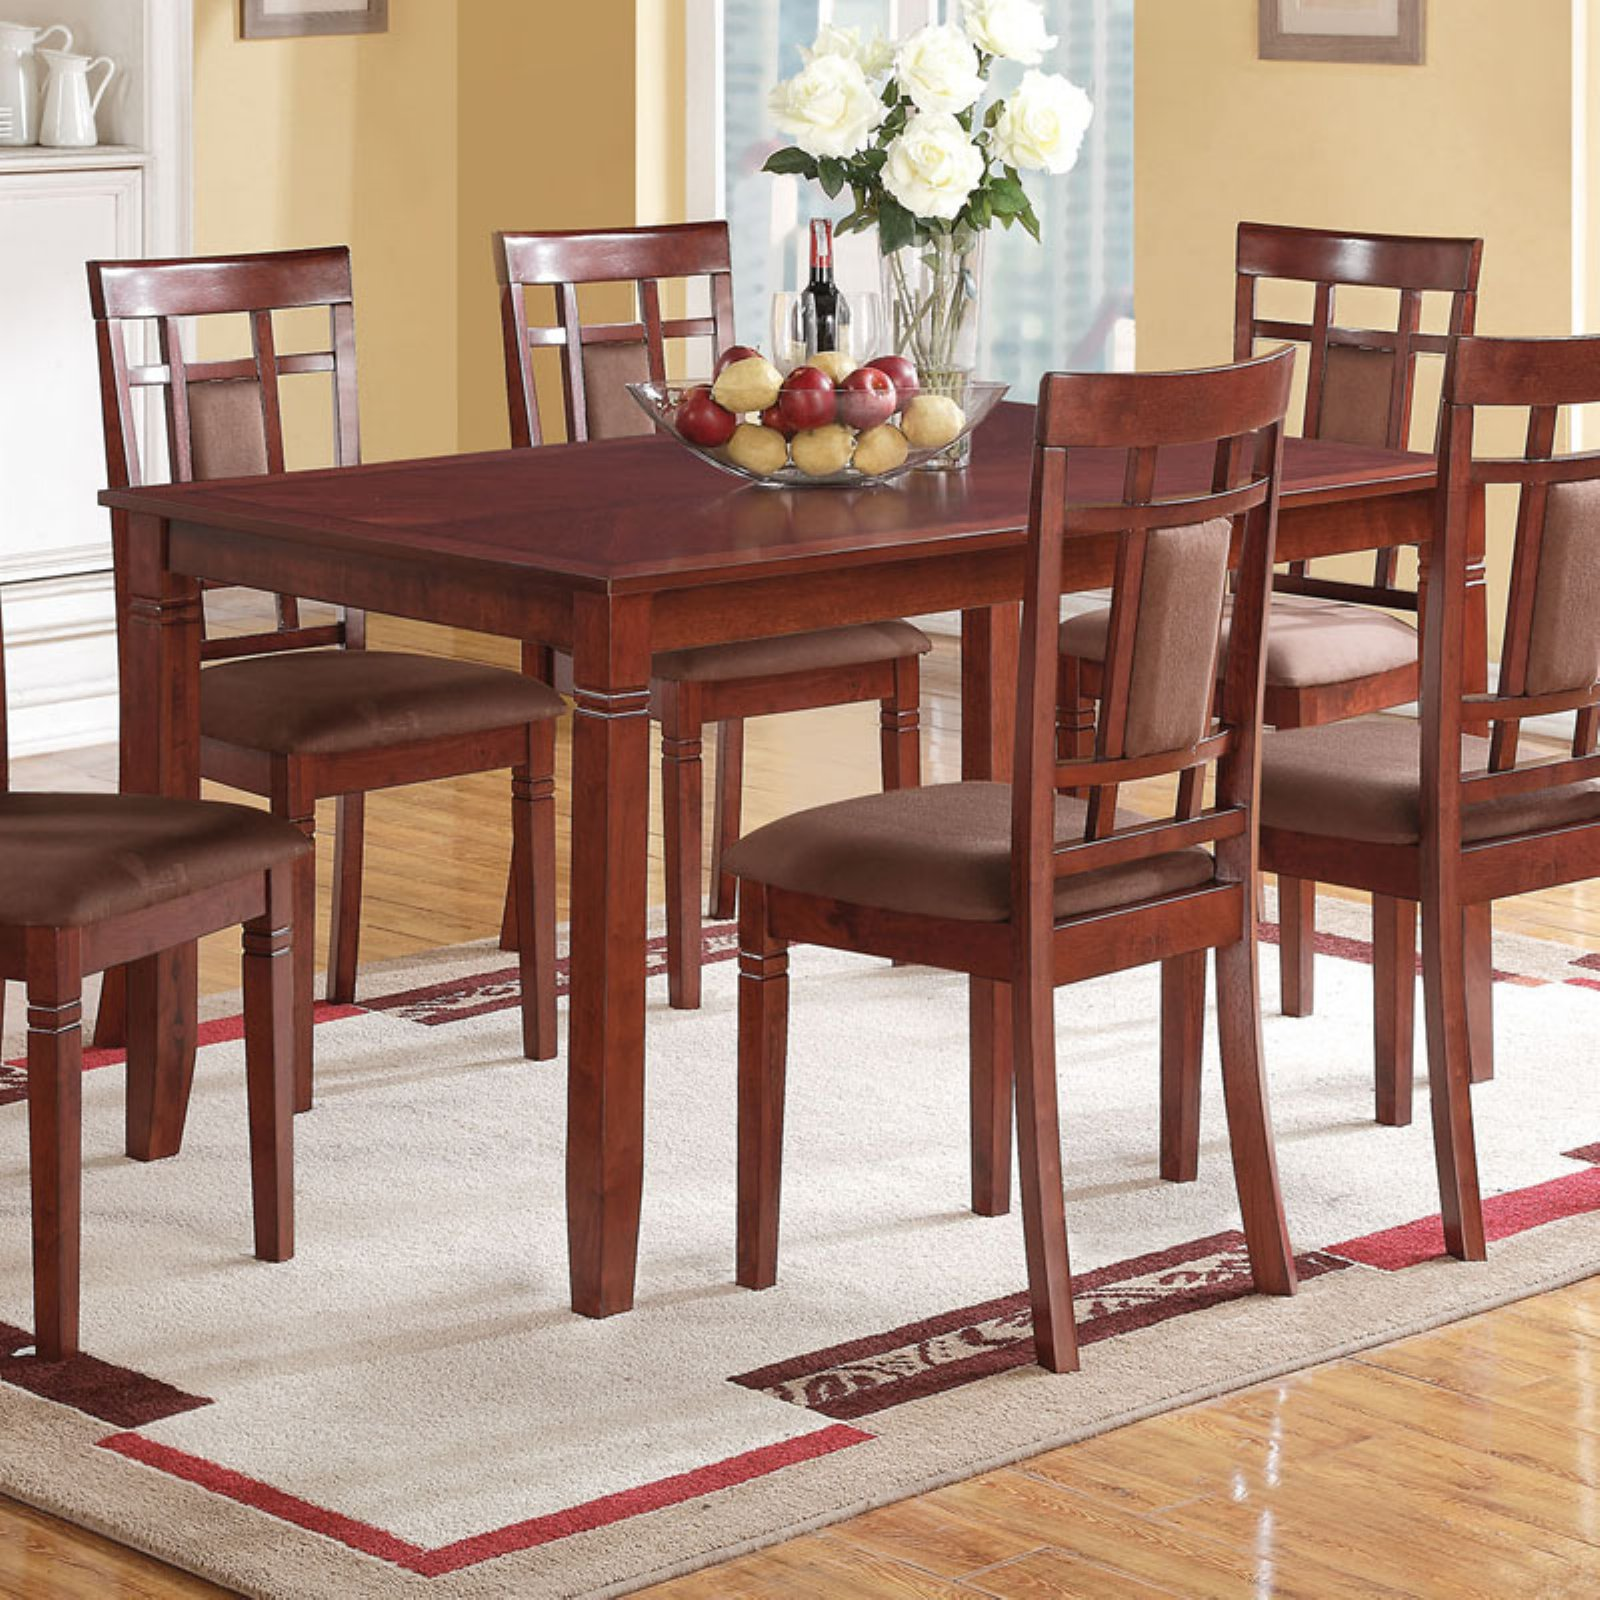 ACME Sonata Dining Table, Cherry